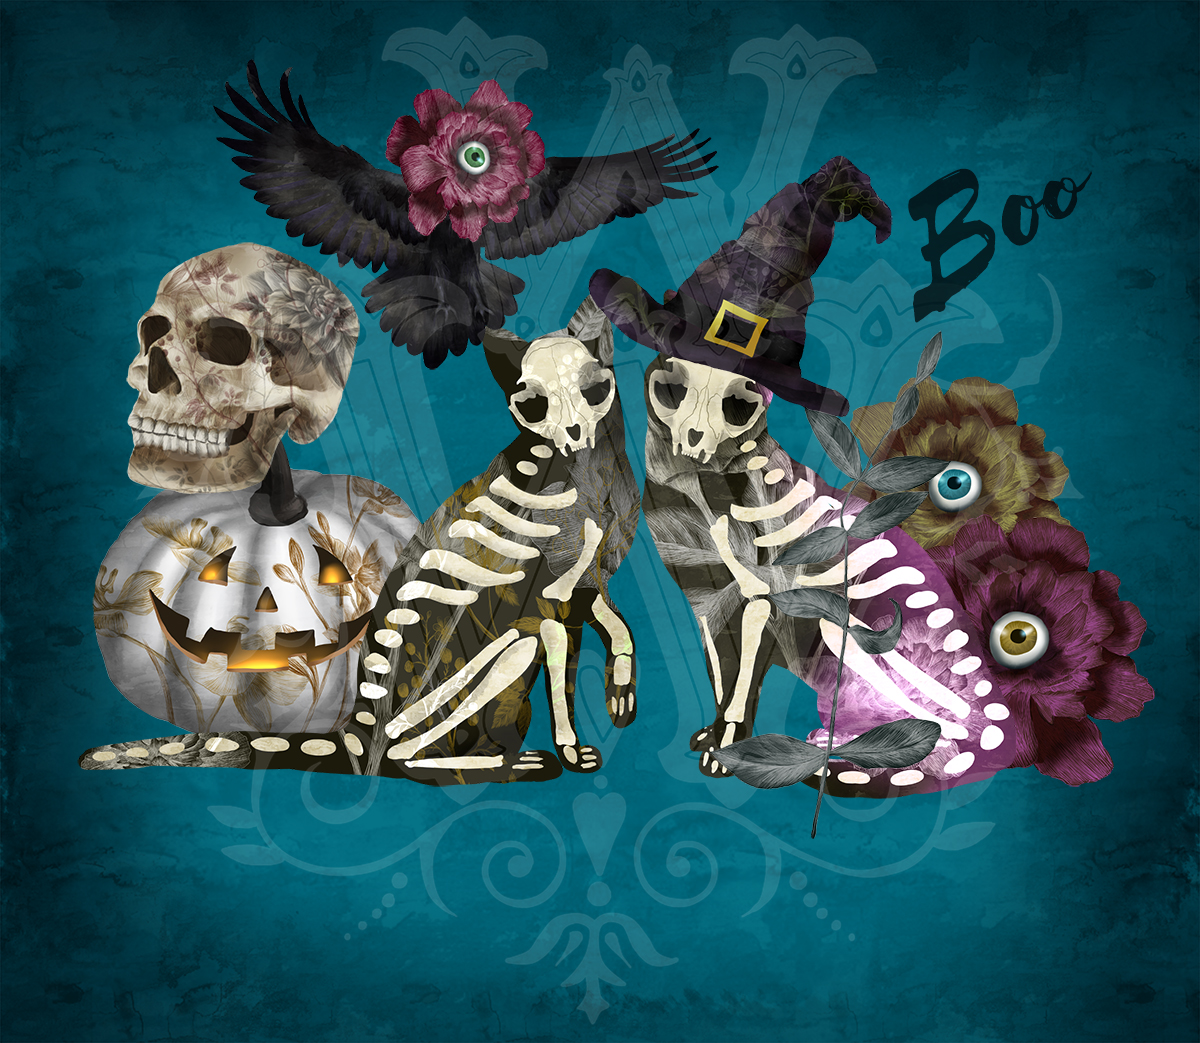 Halloween spooky clipart with skeleton cats, witch skull example image 3